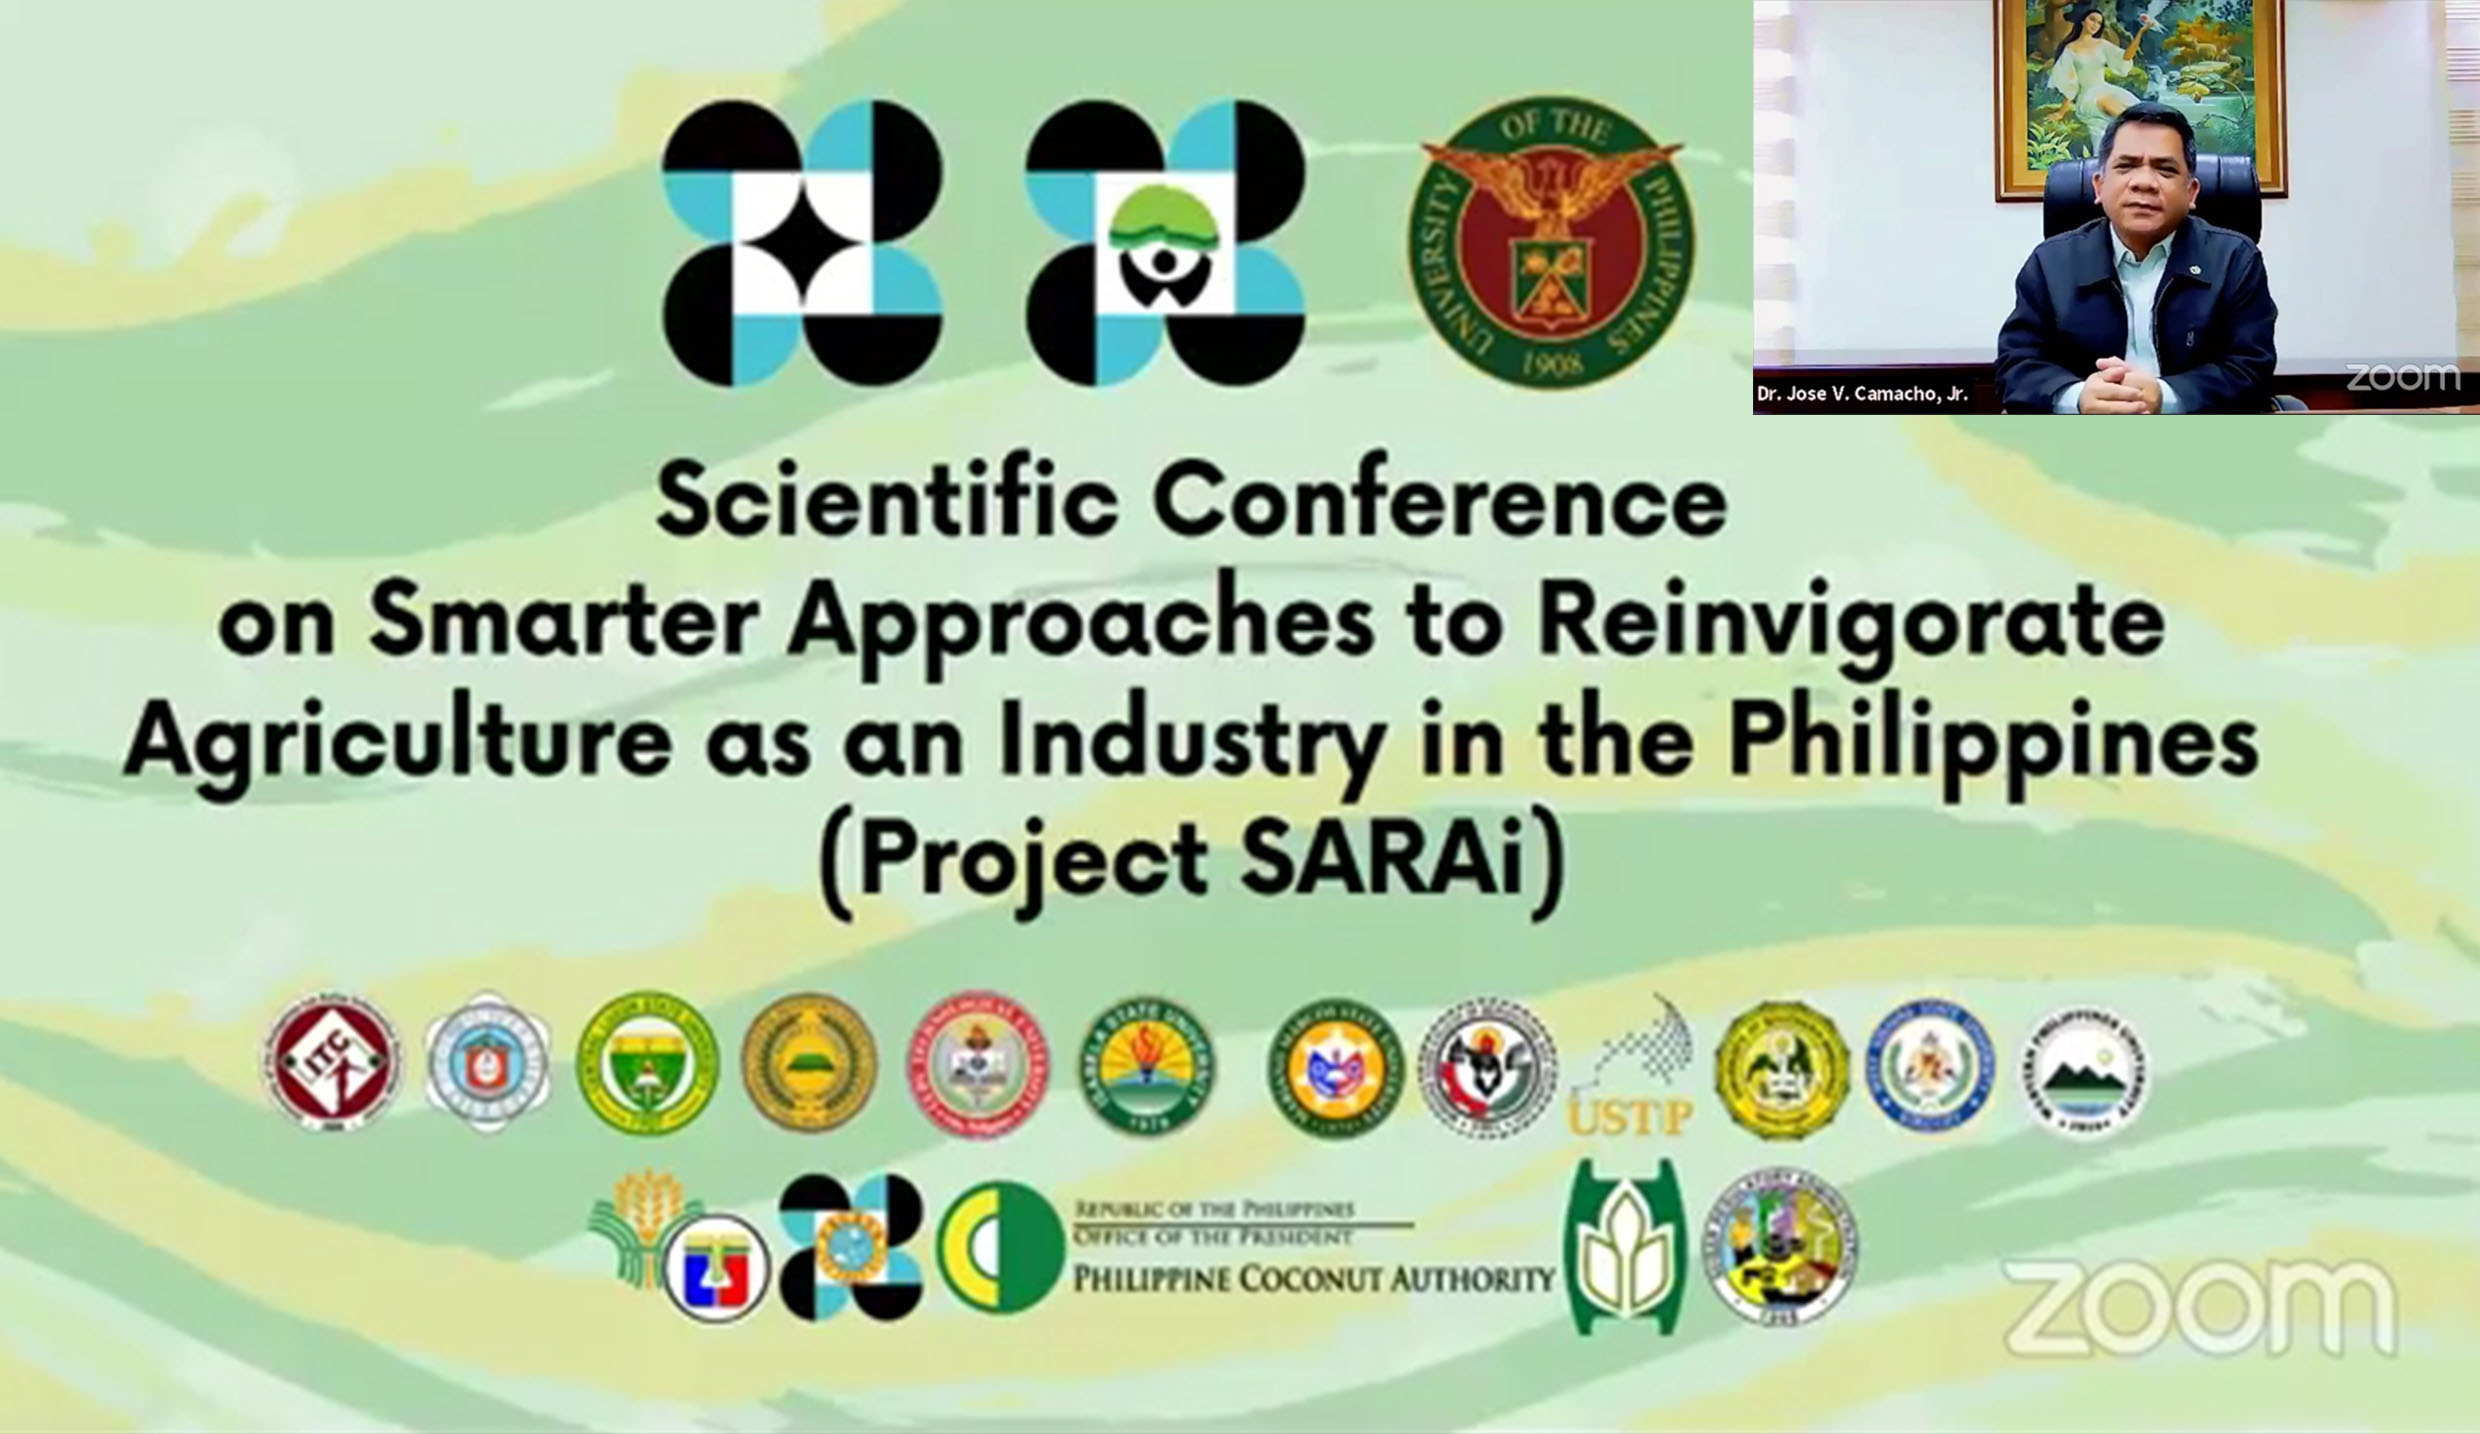 Project SARAi shares the science behind its technologies